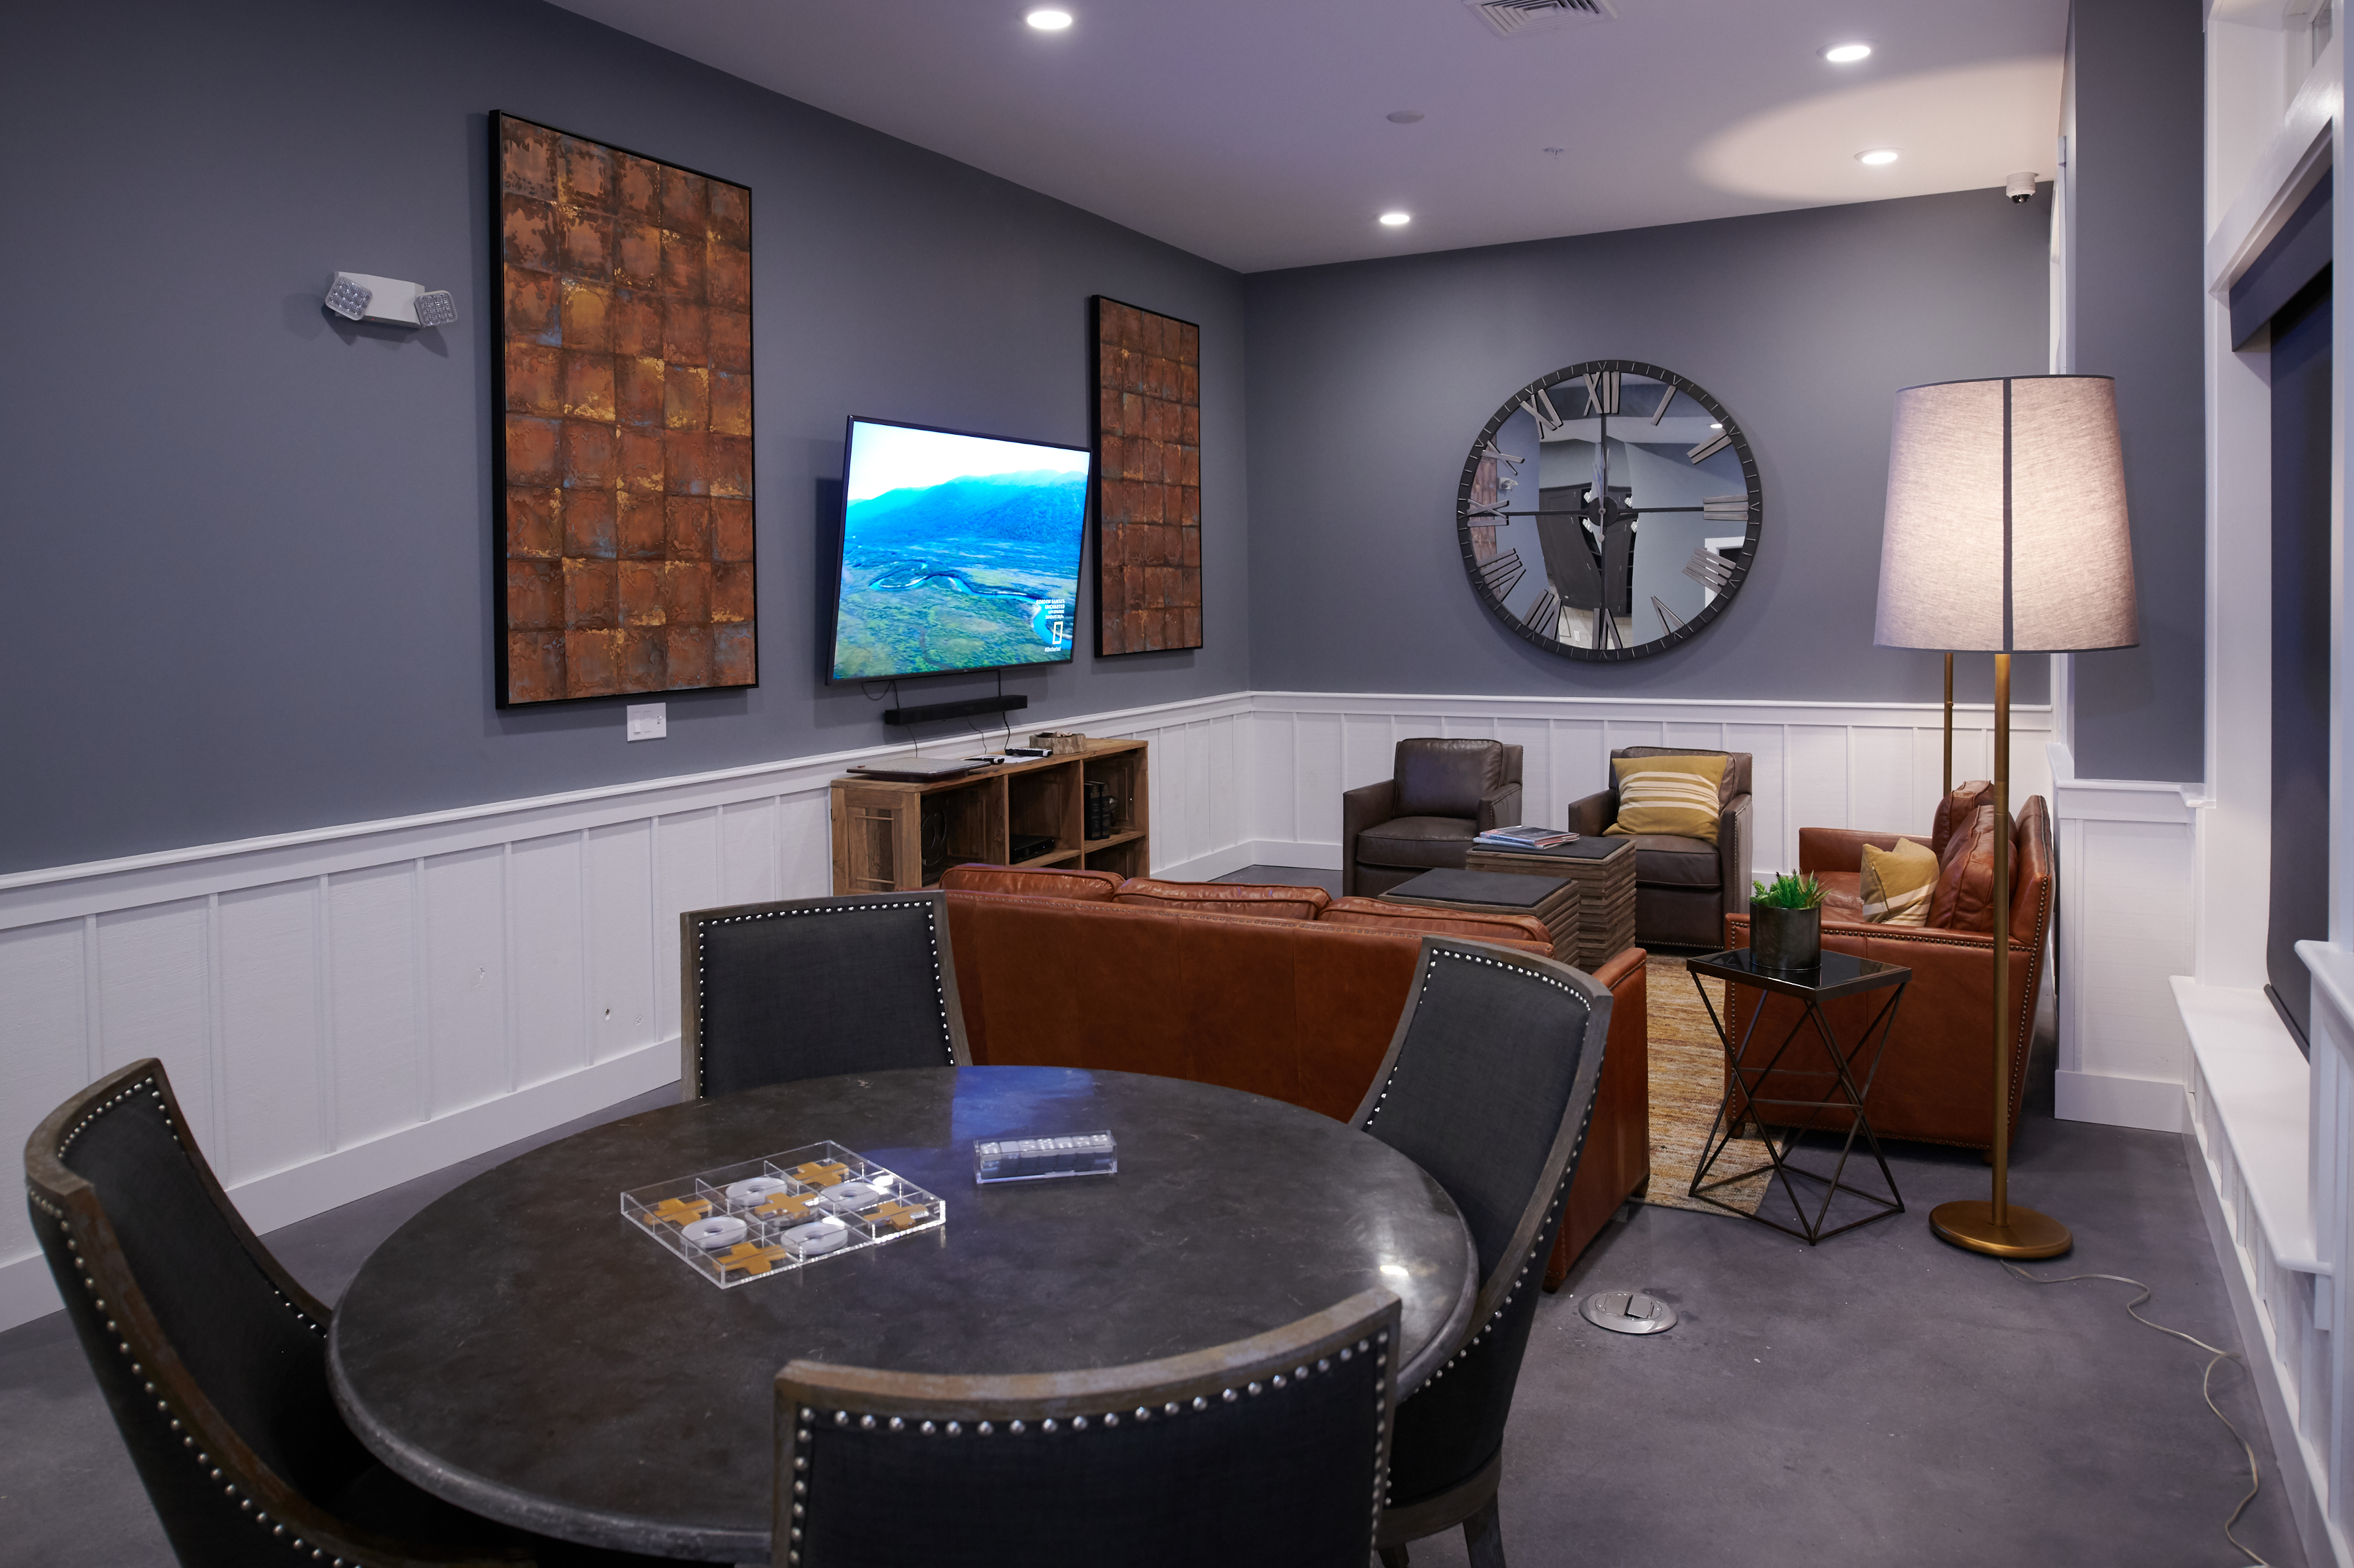 Clubroom at Verde with two couches, two chairs, and round table, and a large television on the wall.